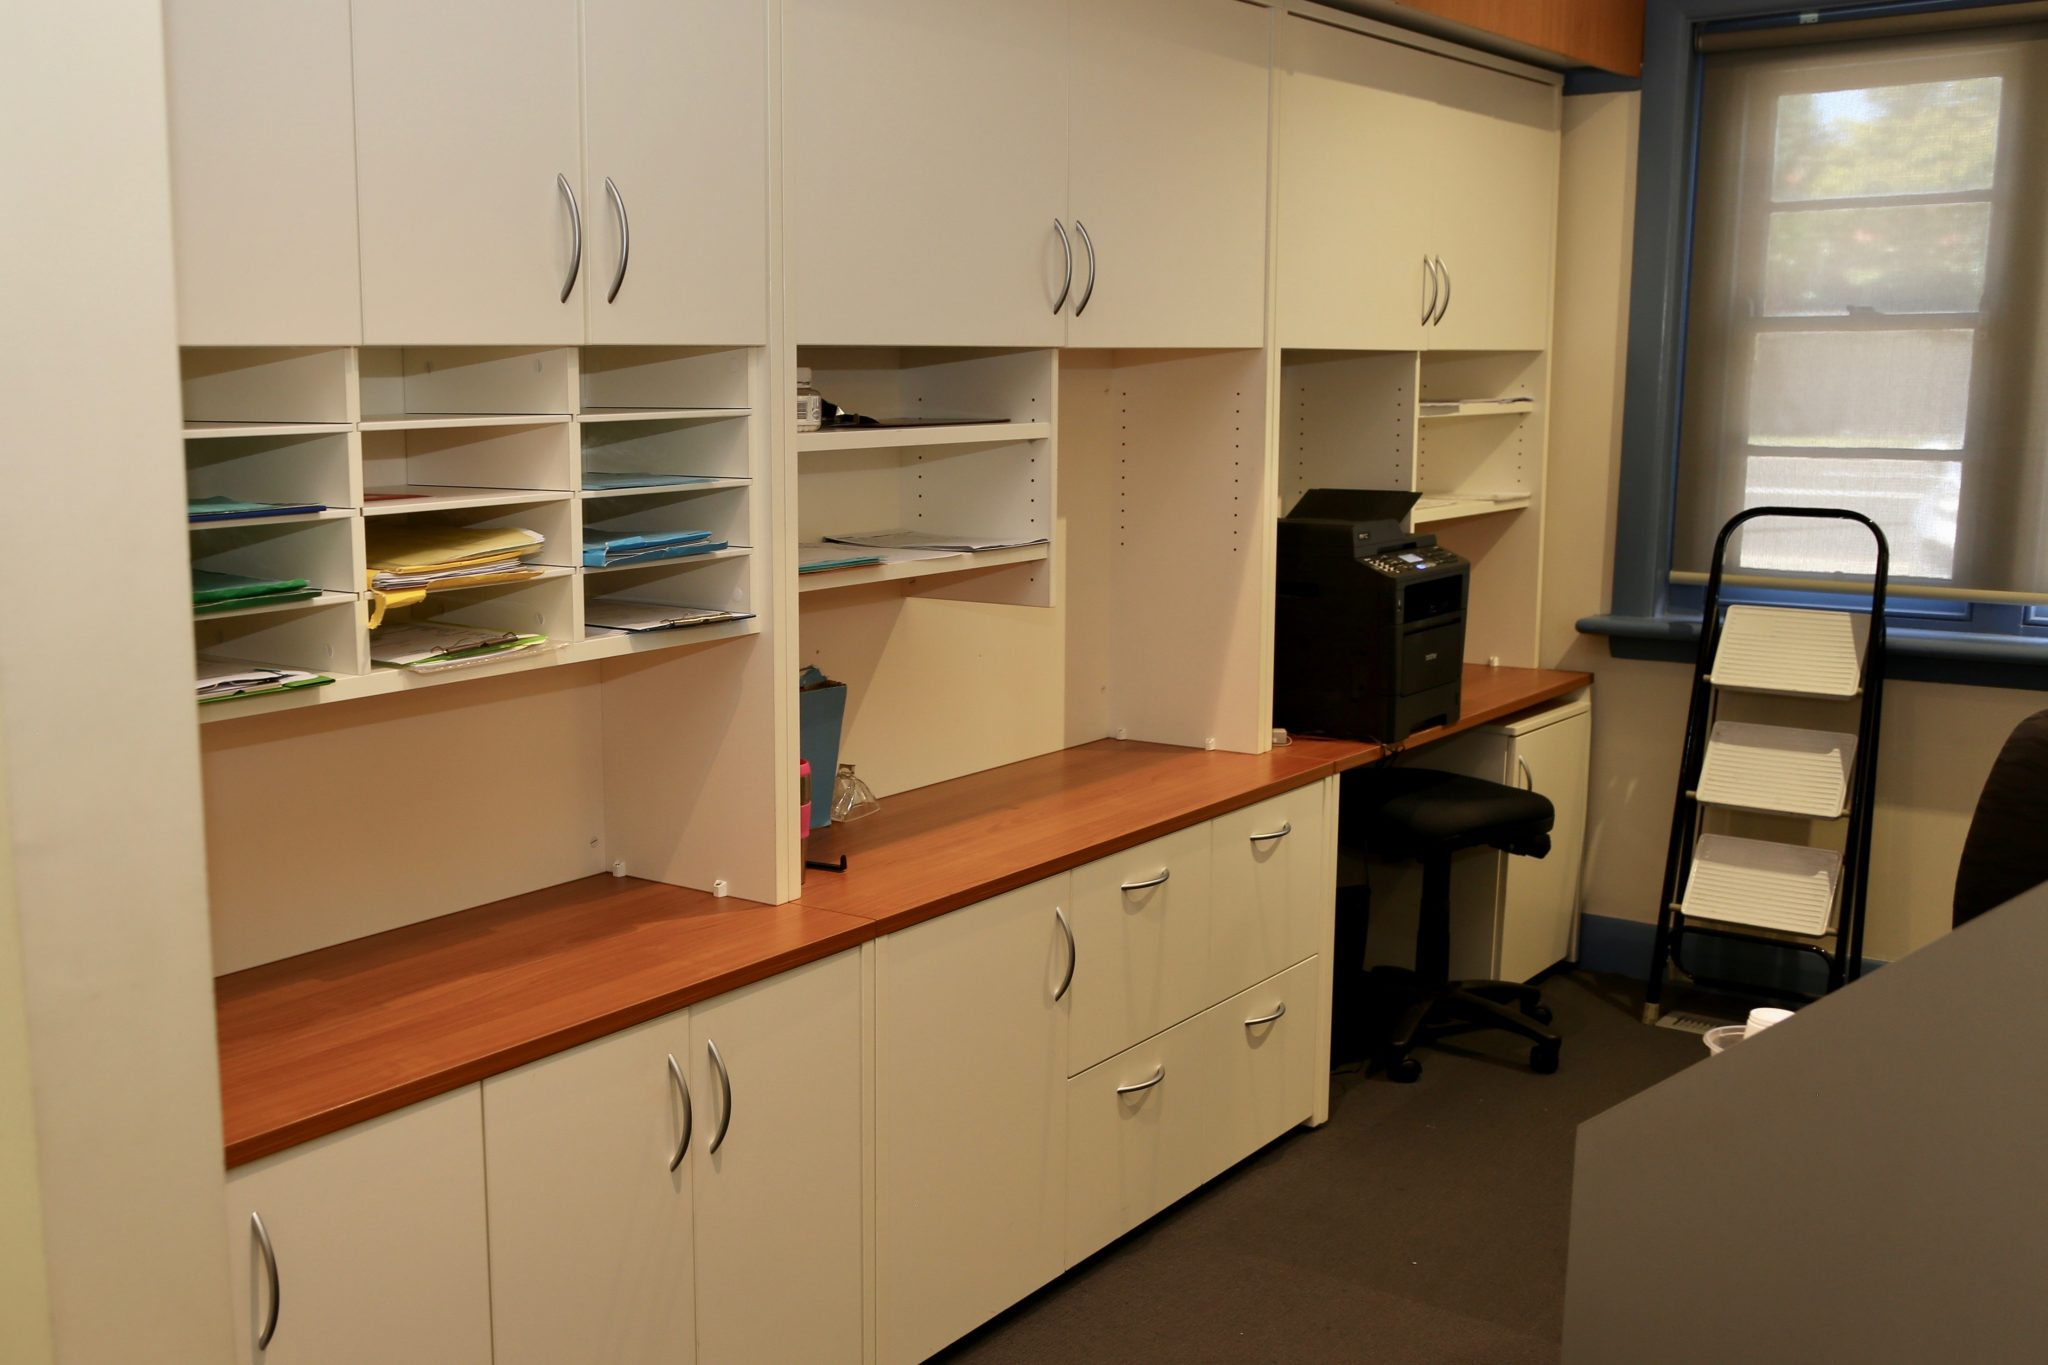 Medical rooms filing area with overhead cabinets